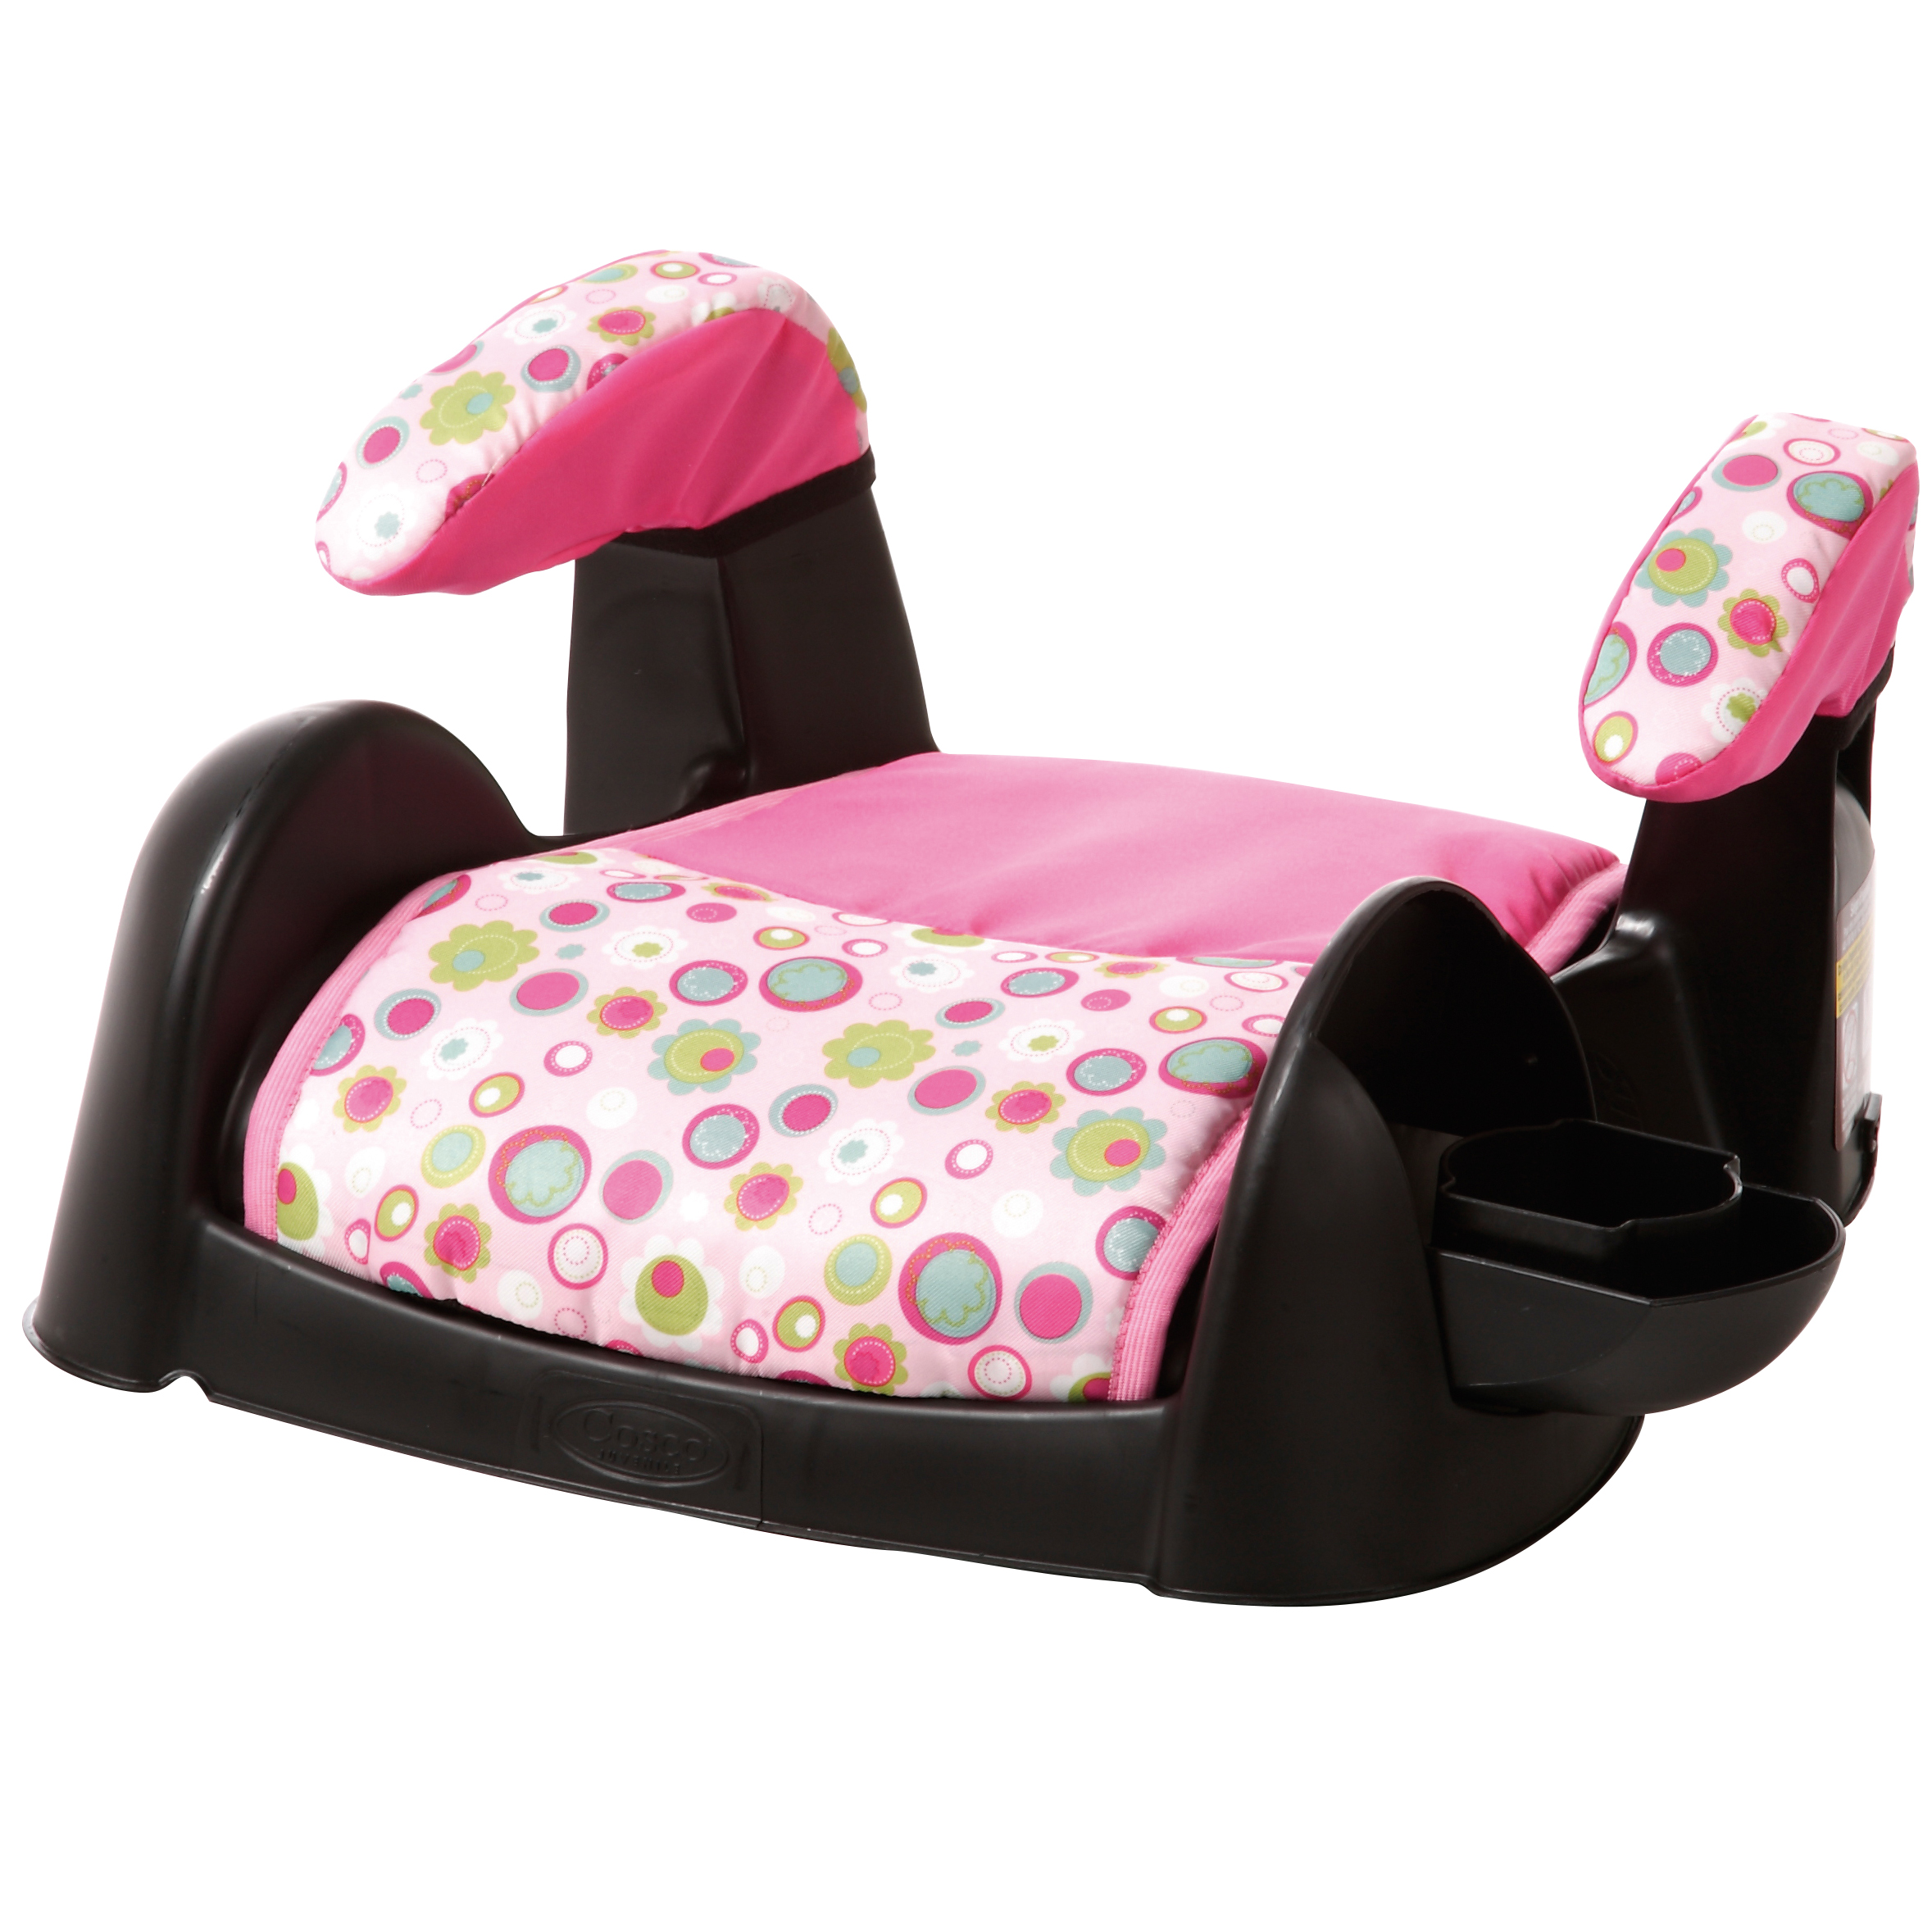 Cosco Ambassador Backless Booster Car Seat, Magical Moonlight